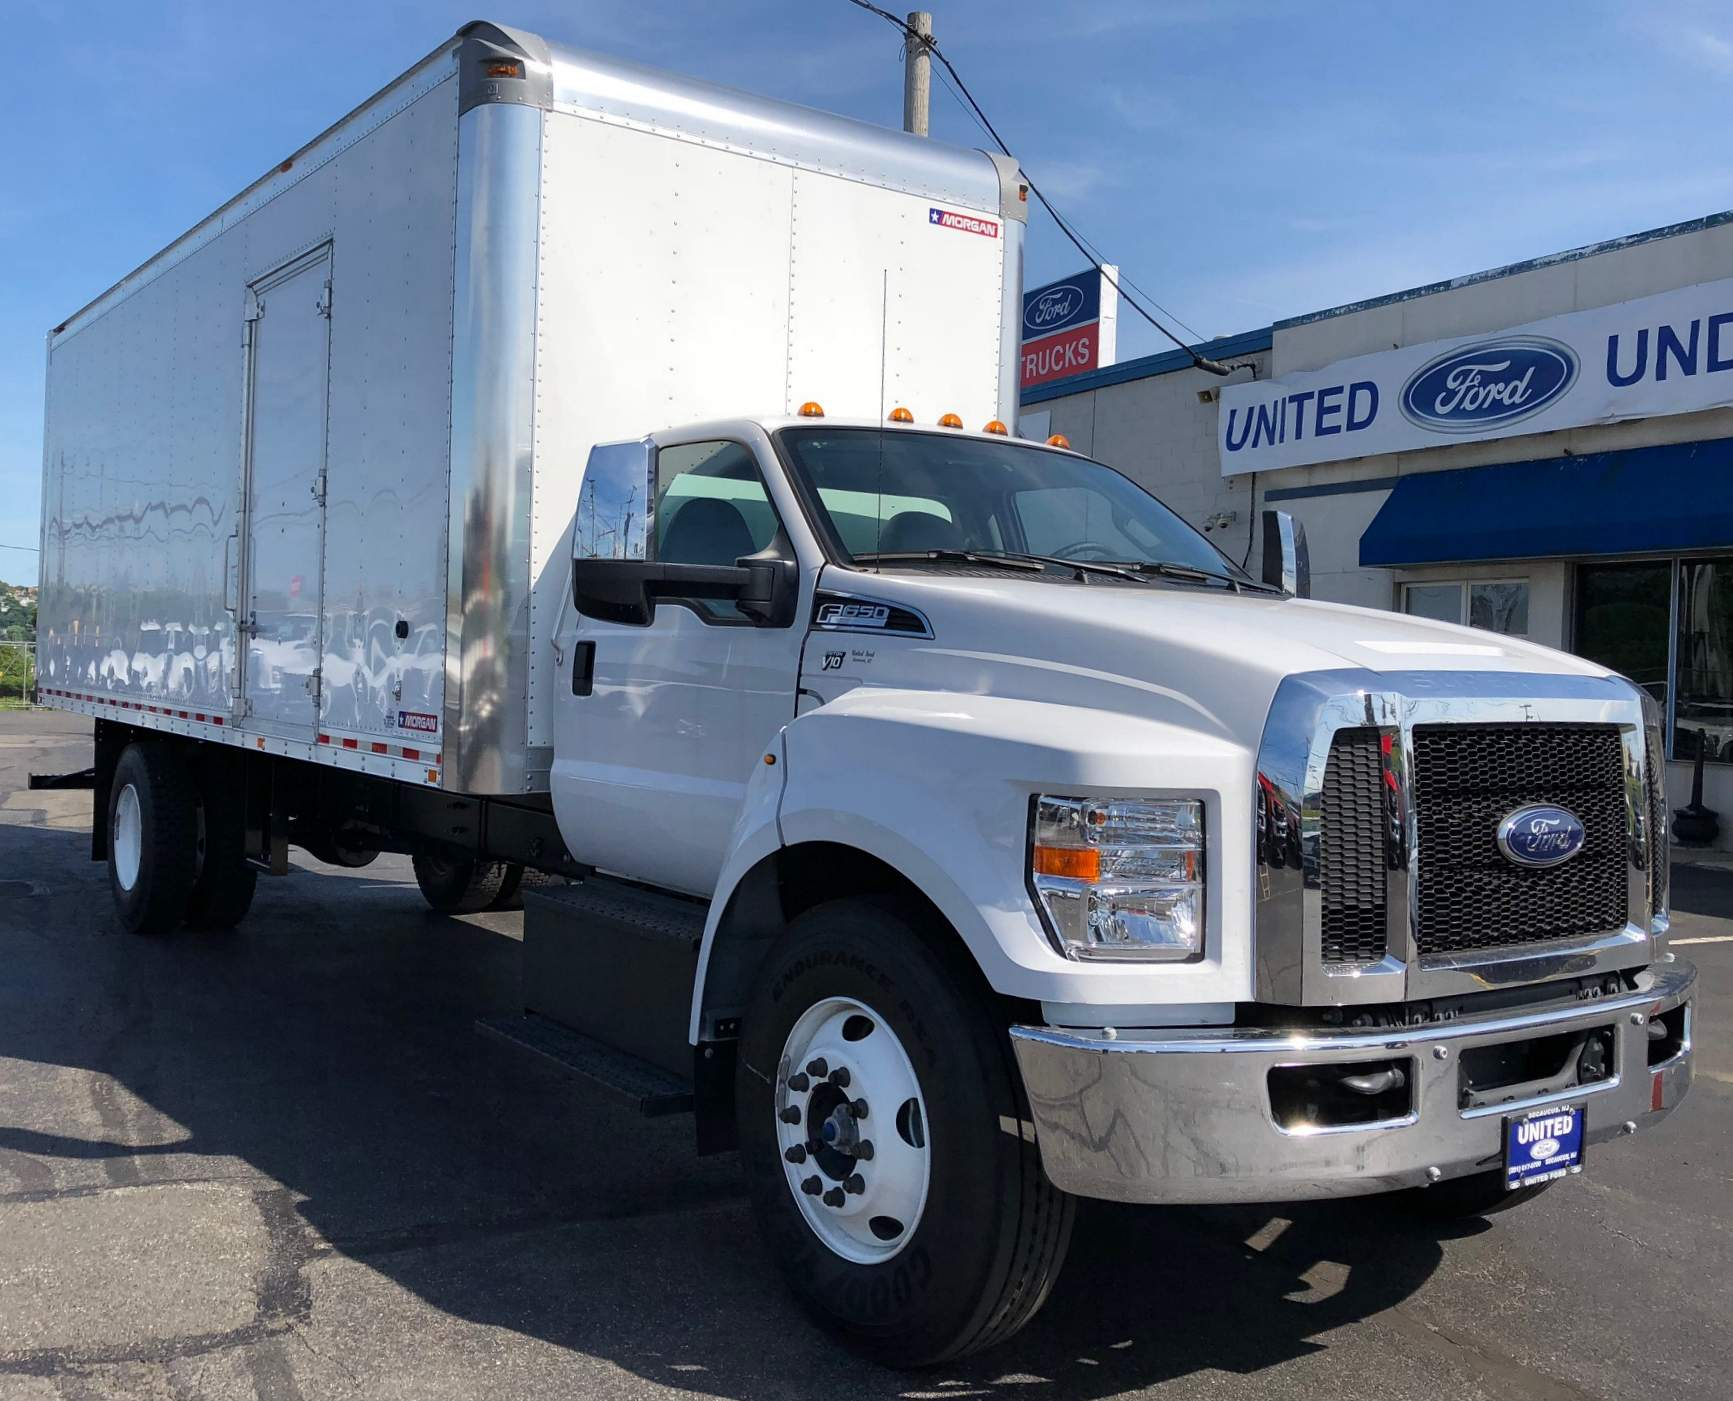 2018 Ford F-650 Chassis F-650 SD Gas Straight Frame BOX TRUCK